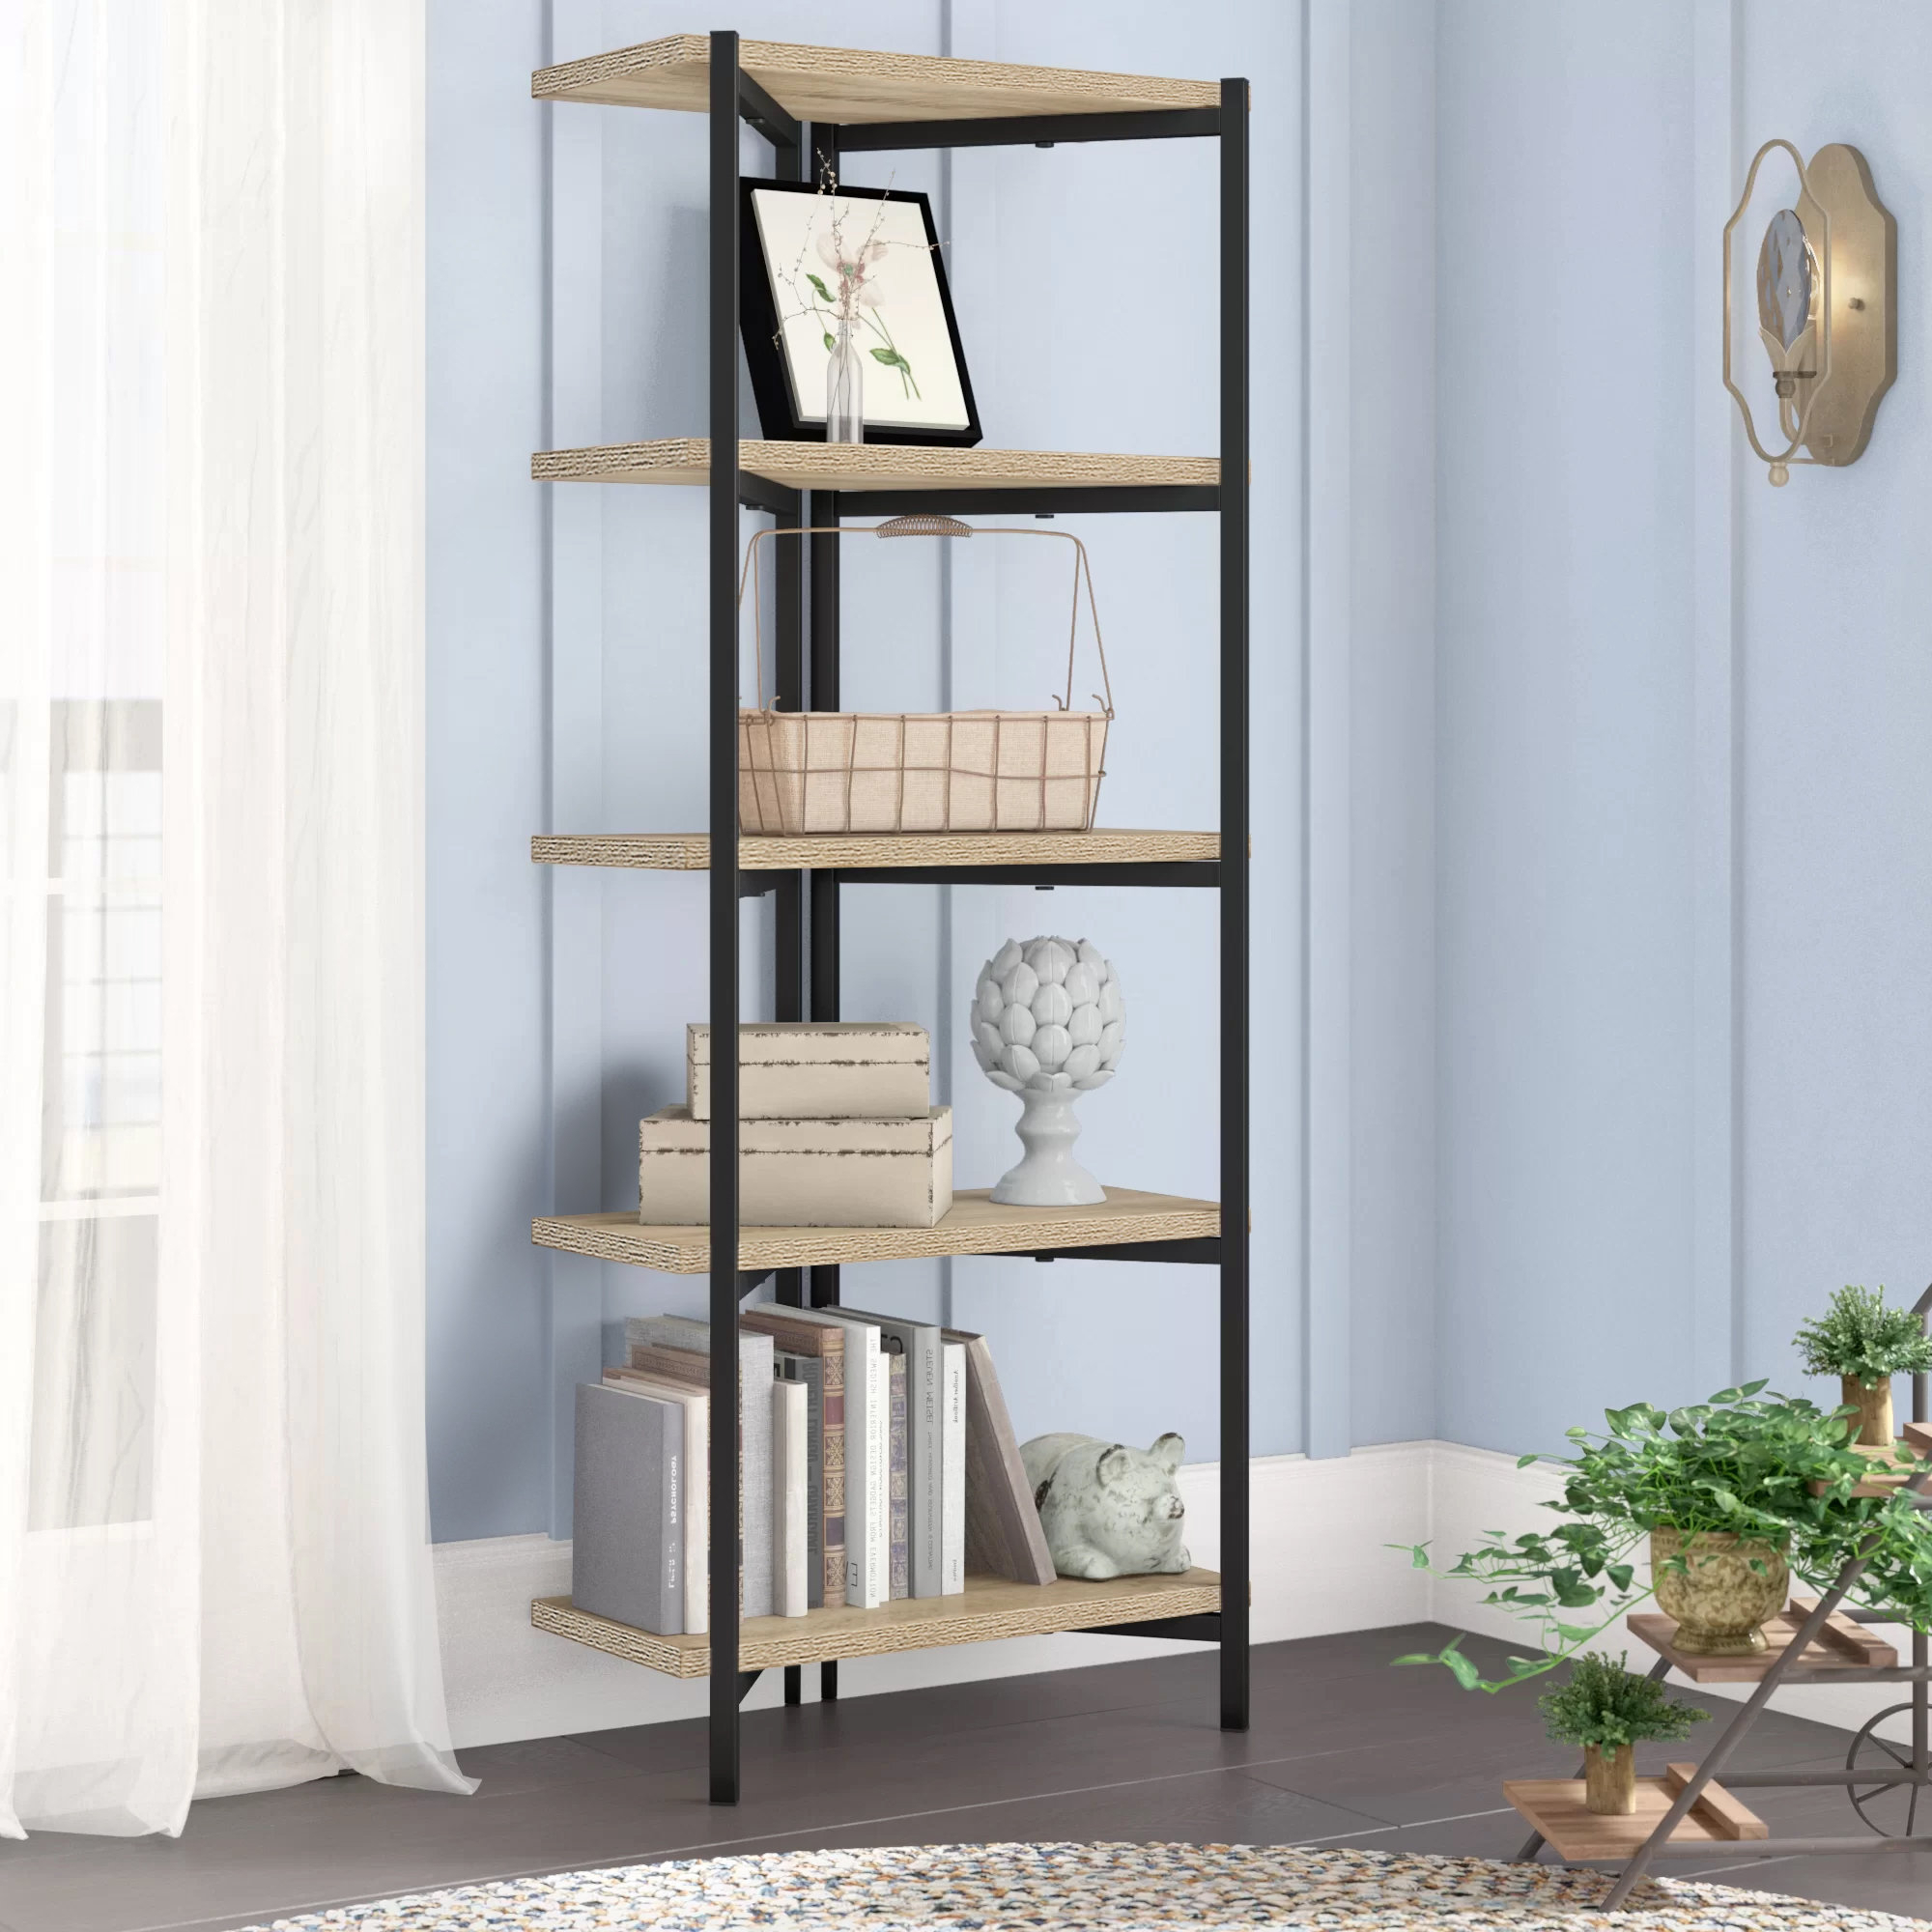 2019 Bronson Etagere Bookcase Inside Aptos Etagere Bookcases (View 8 of 20)